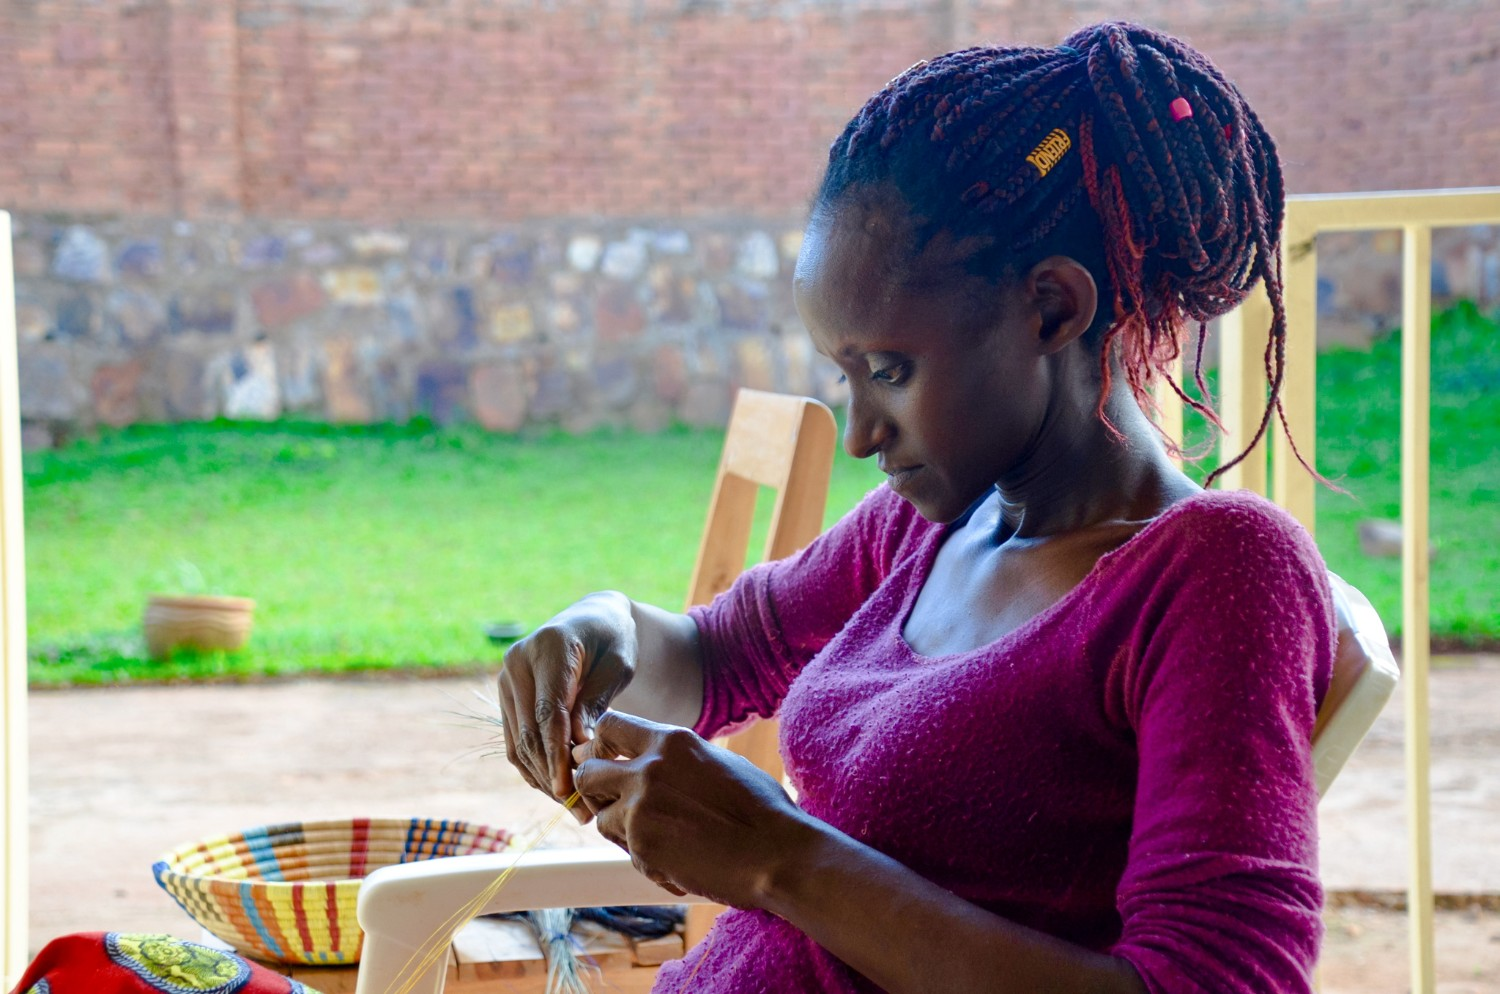 A Rwandese woman weaving a peace basket at Talking Through Art, a women's weaving cooperative